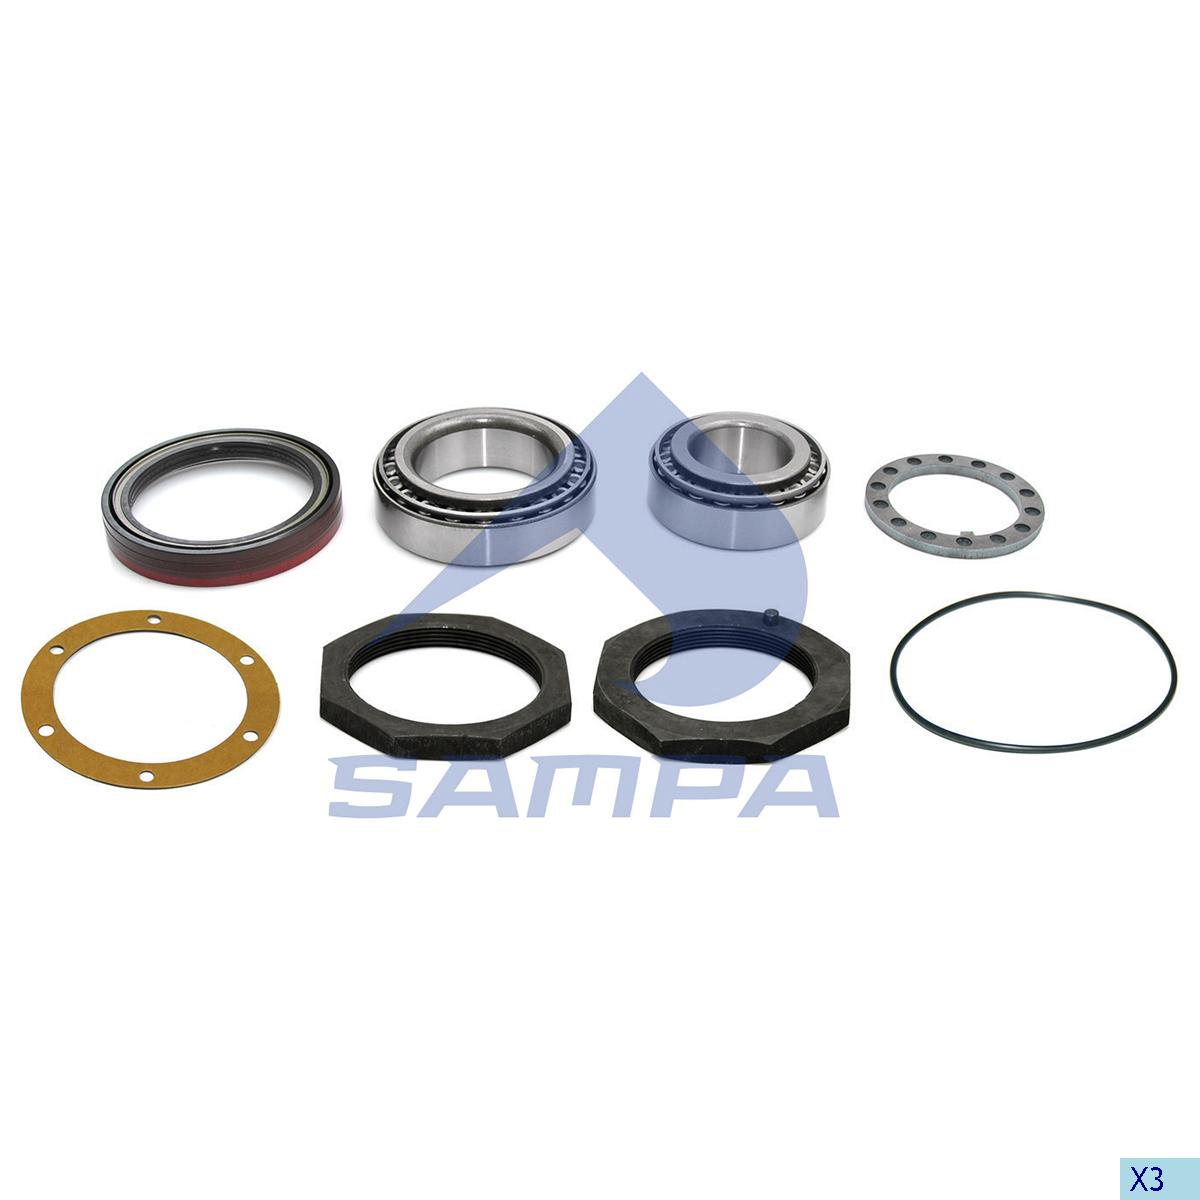 Repair Kit, Axle, Ror-Meritor, Power Unit